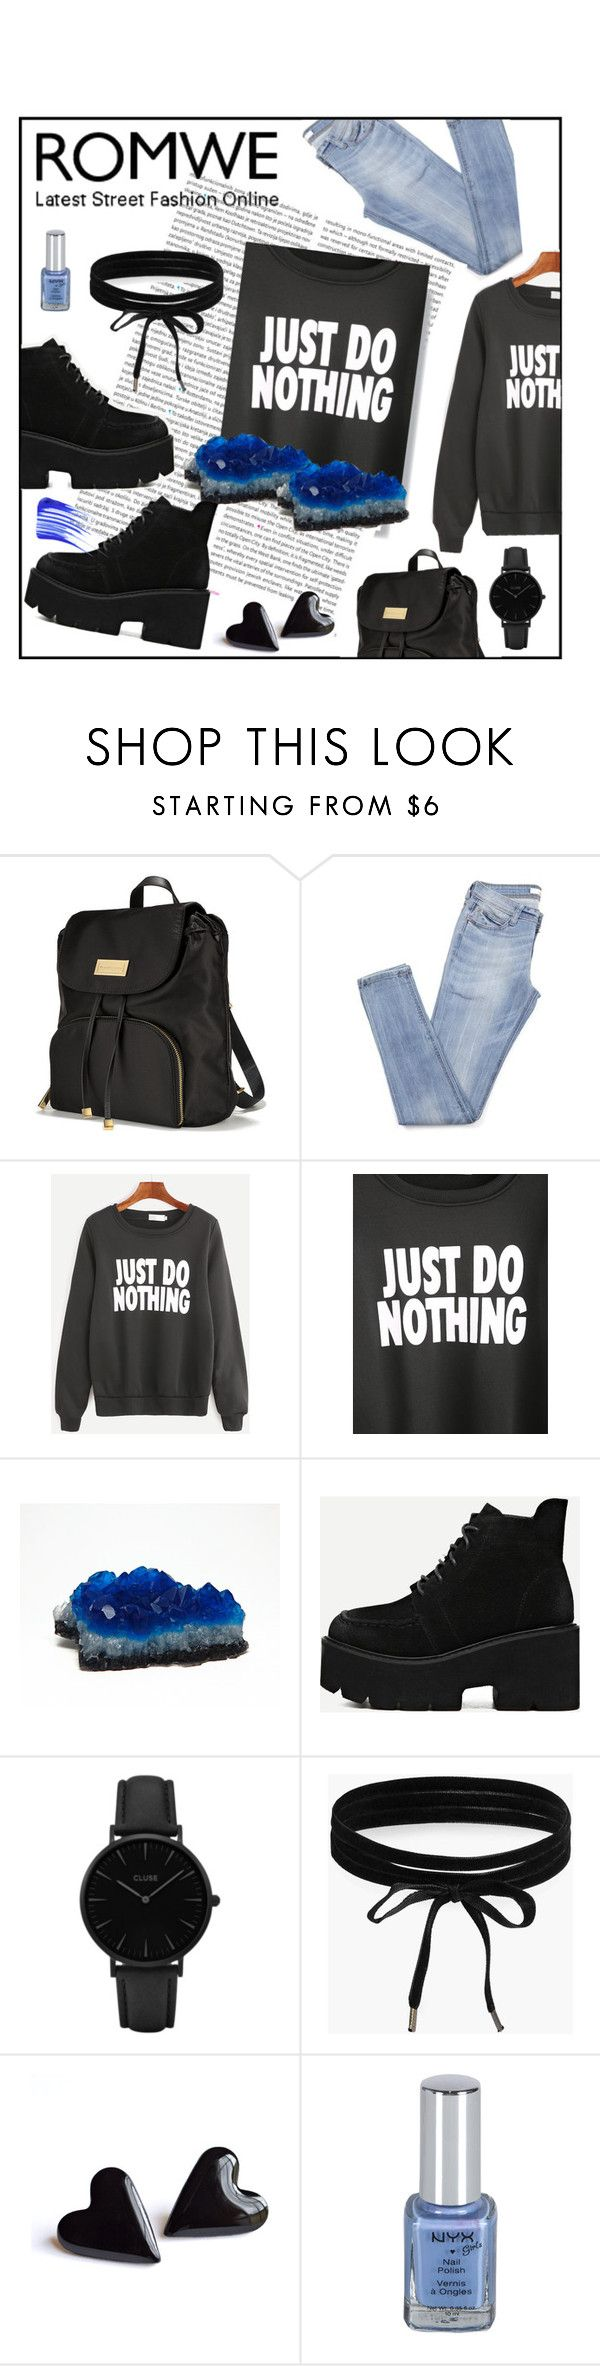 """Black Slogan Print Long Sleeve Sweatshirt"" by sandraa-jwoww ❤ liked on Polyvore featuring Victoria's Secret, Oris, CLUSE, Boohoo and Tom Ford"